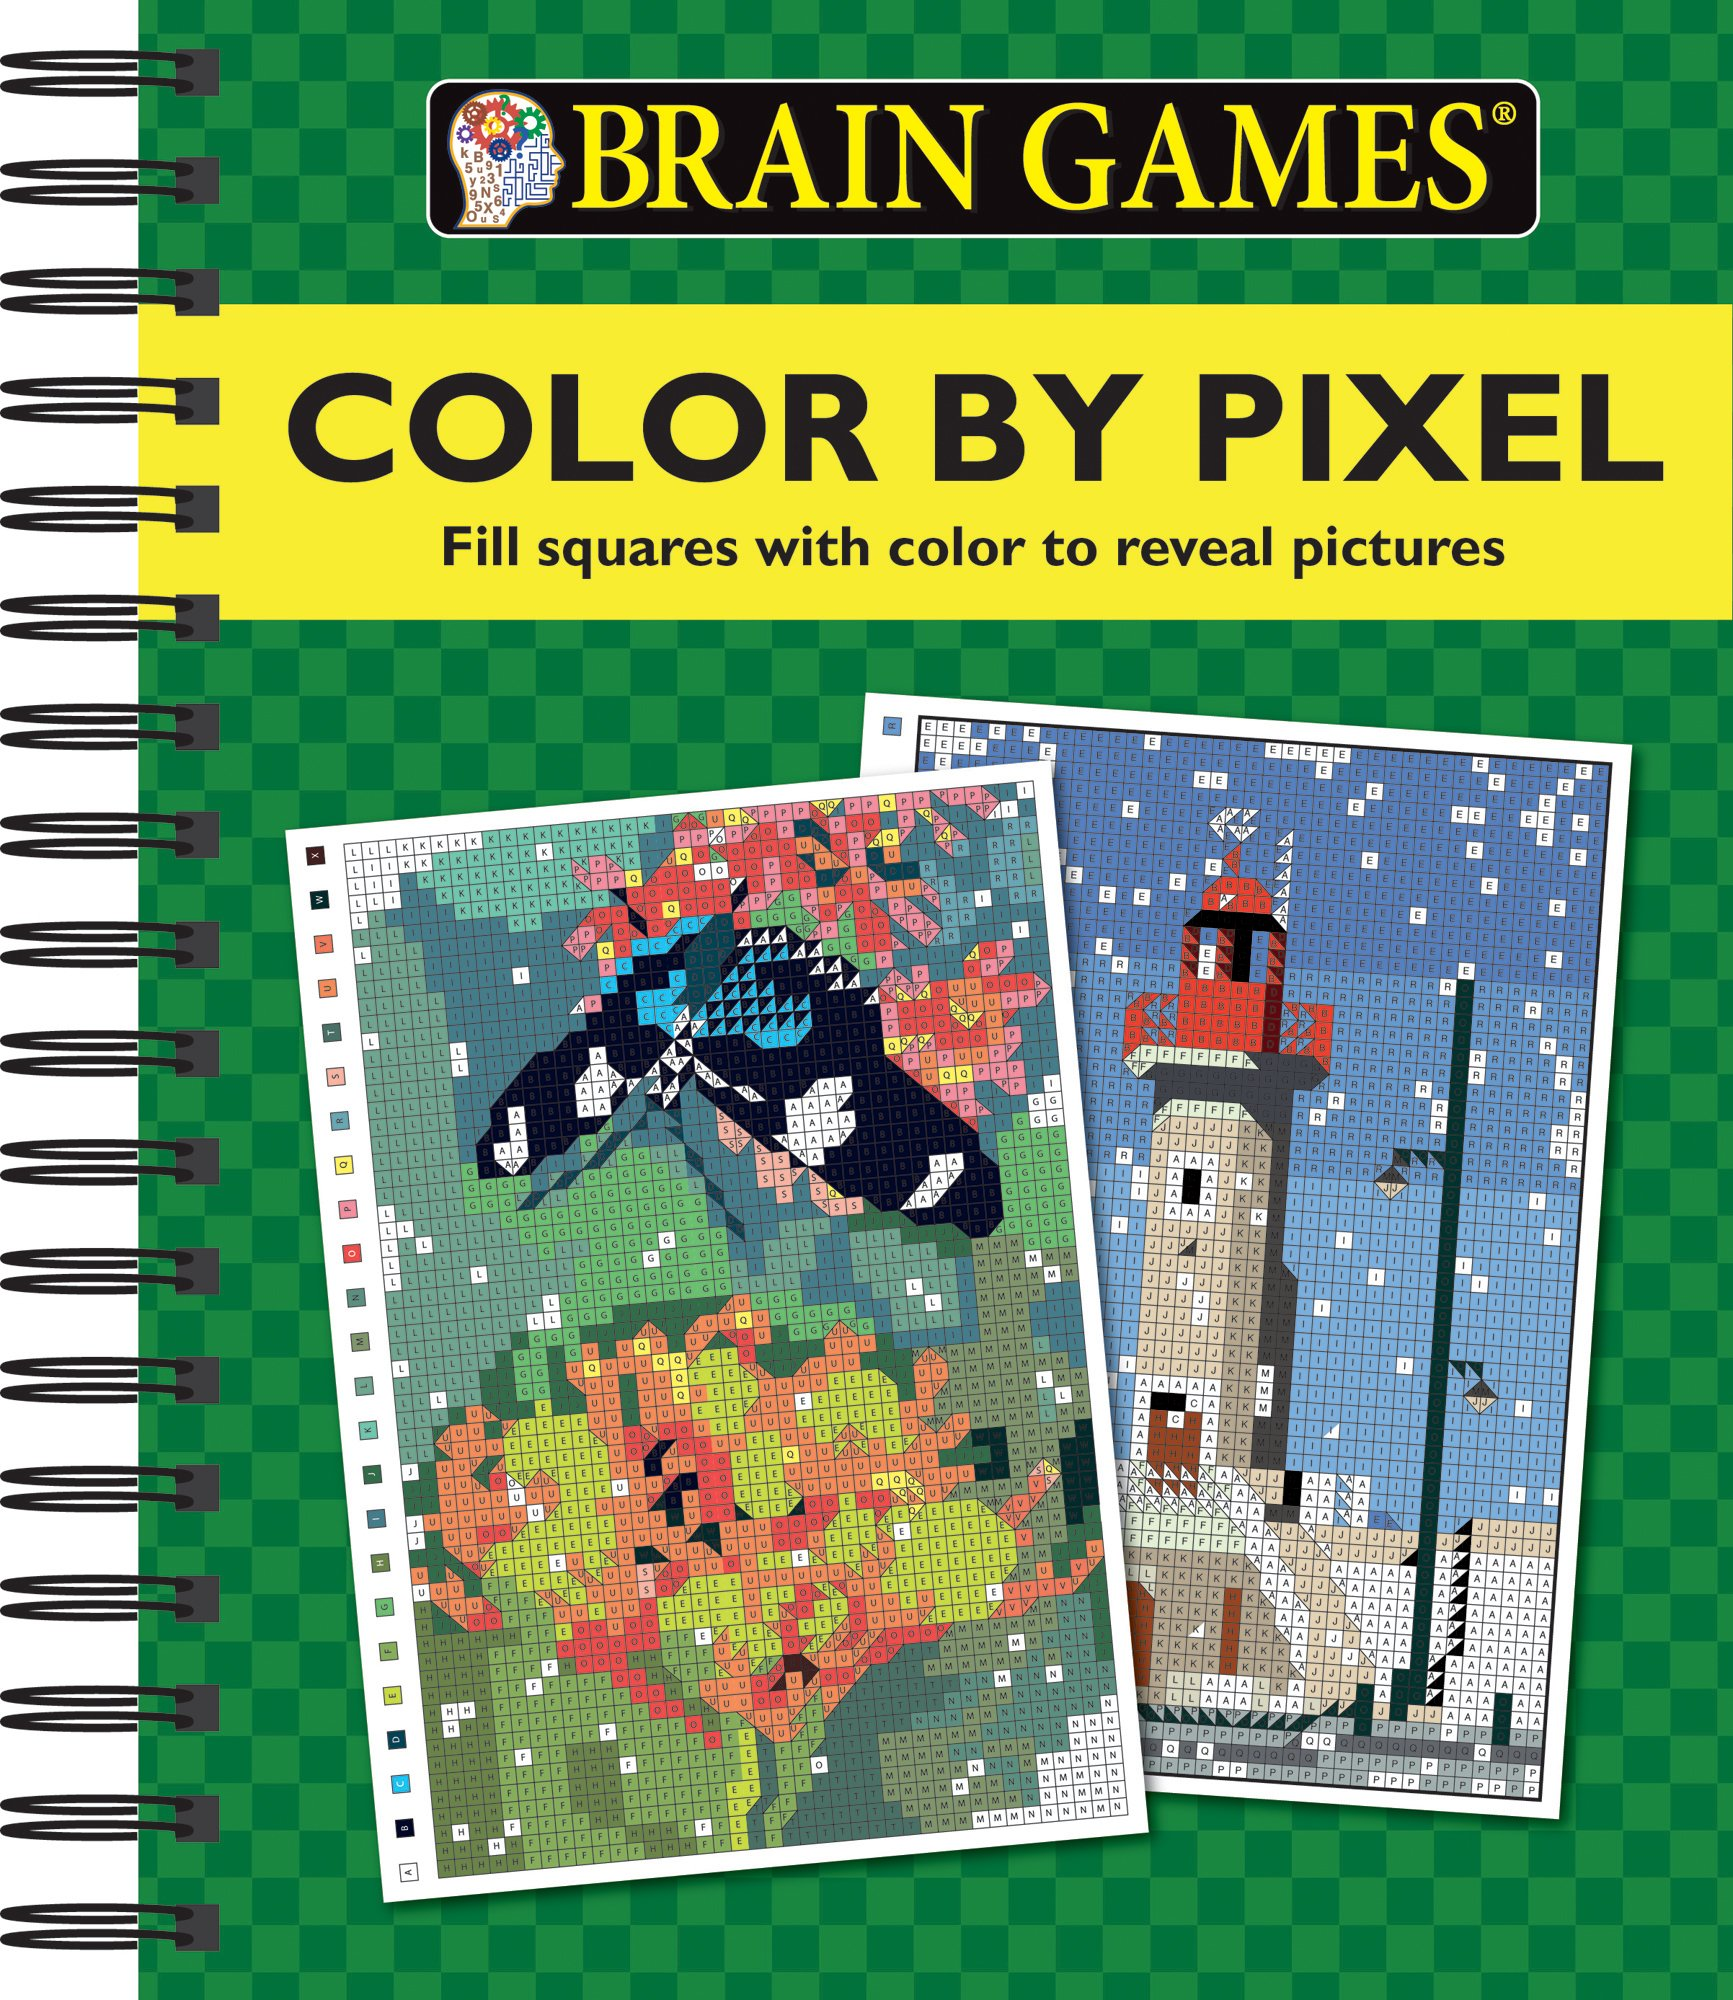 amazoncom brain games color by pixel 9781680223064 editors of publications international ltd books - Color Code Book